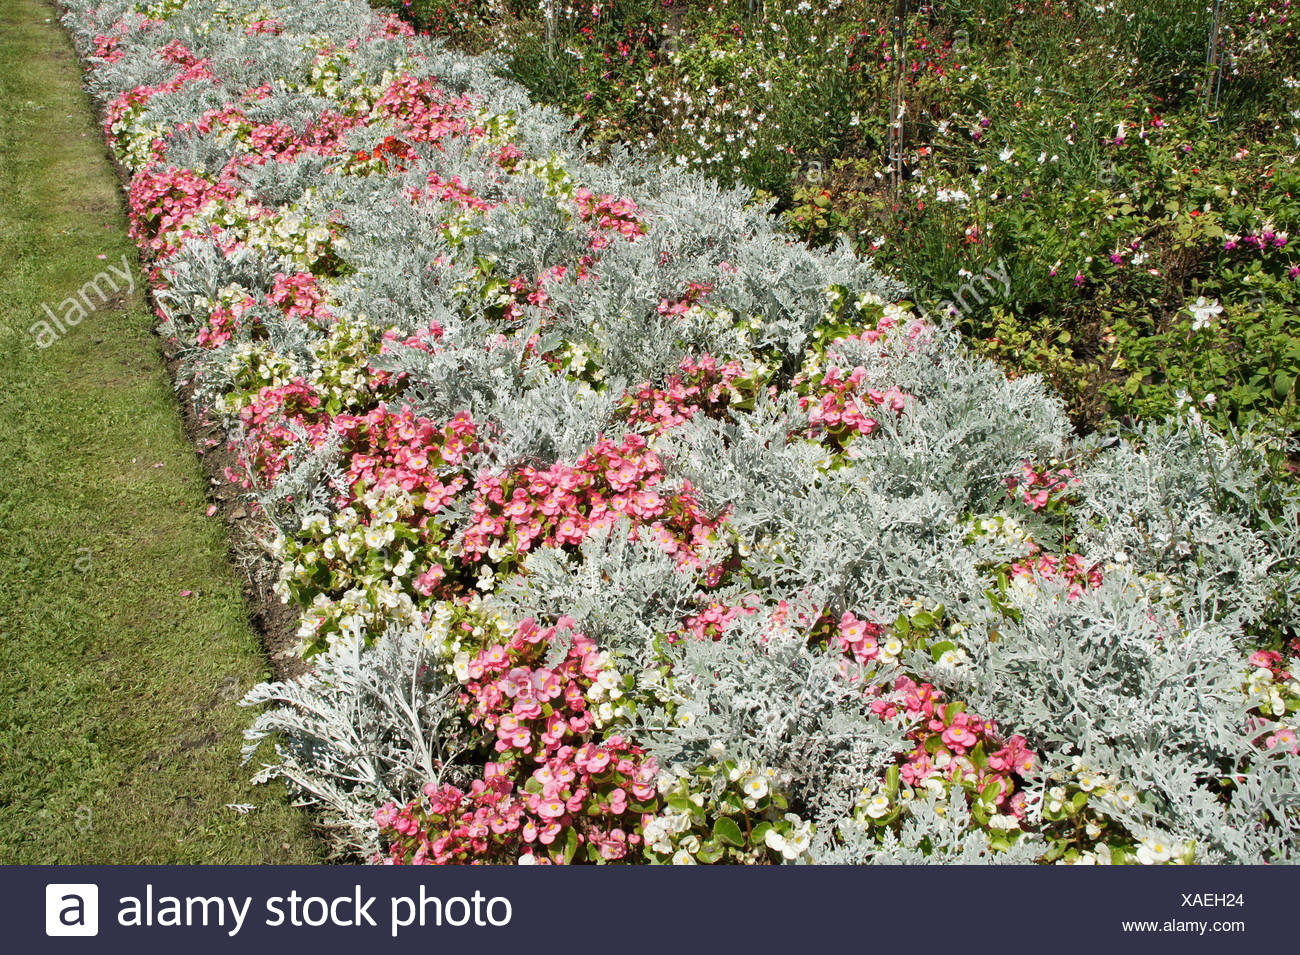 Dusty Miller And Begonia Stock Photos & Dusty Miller And